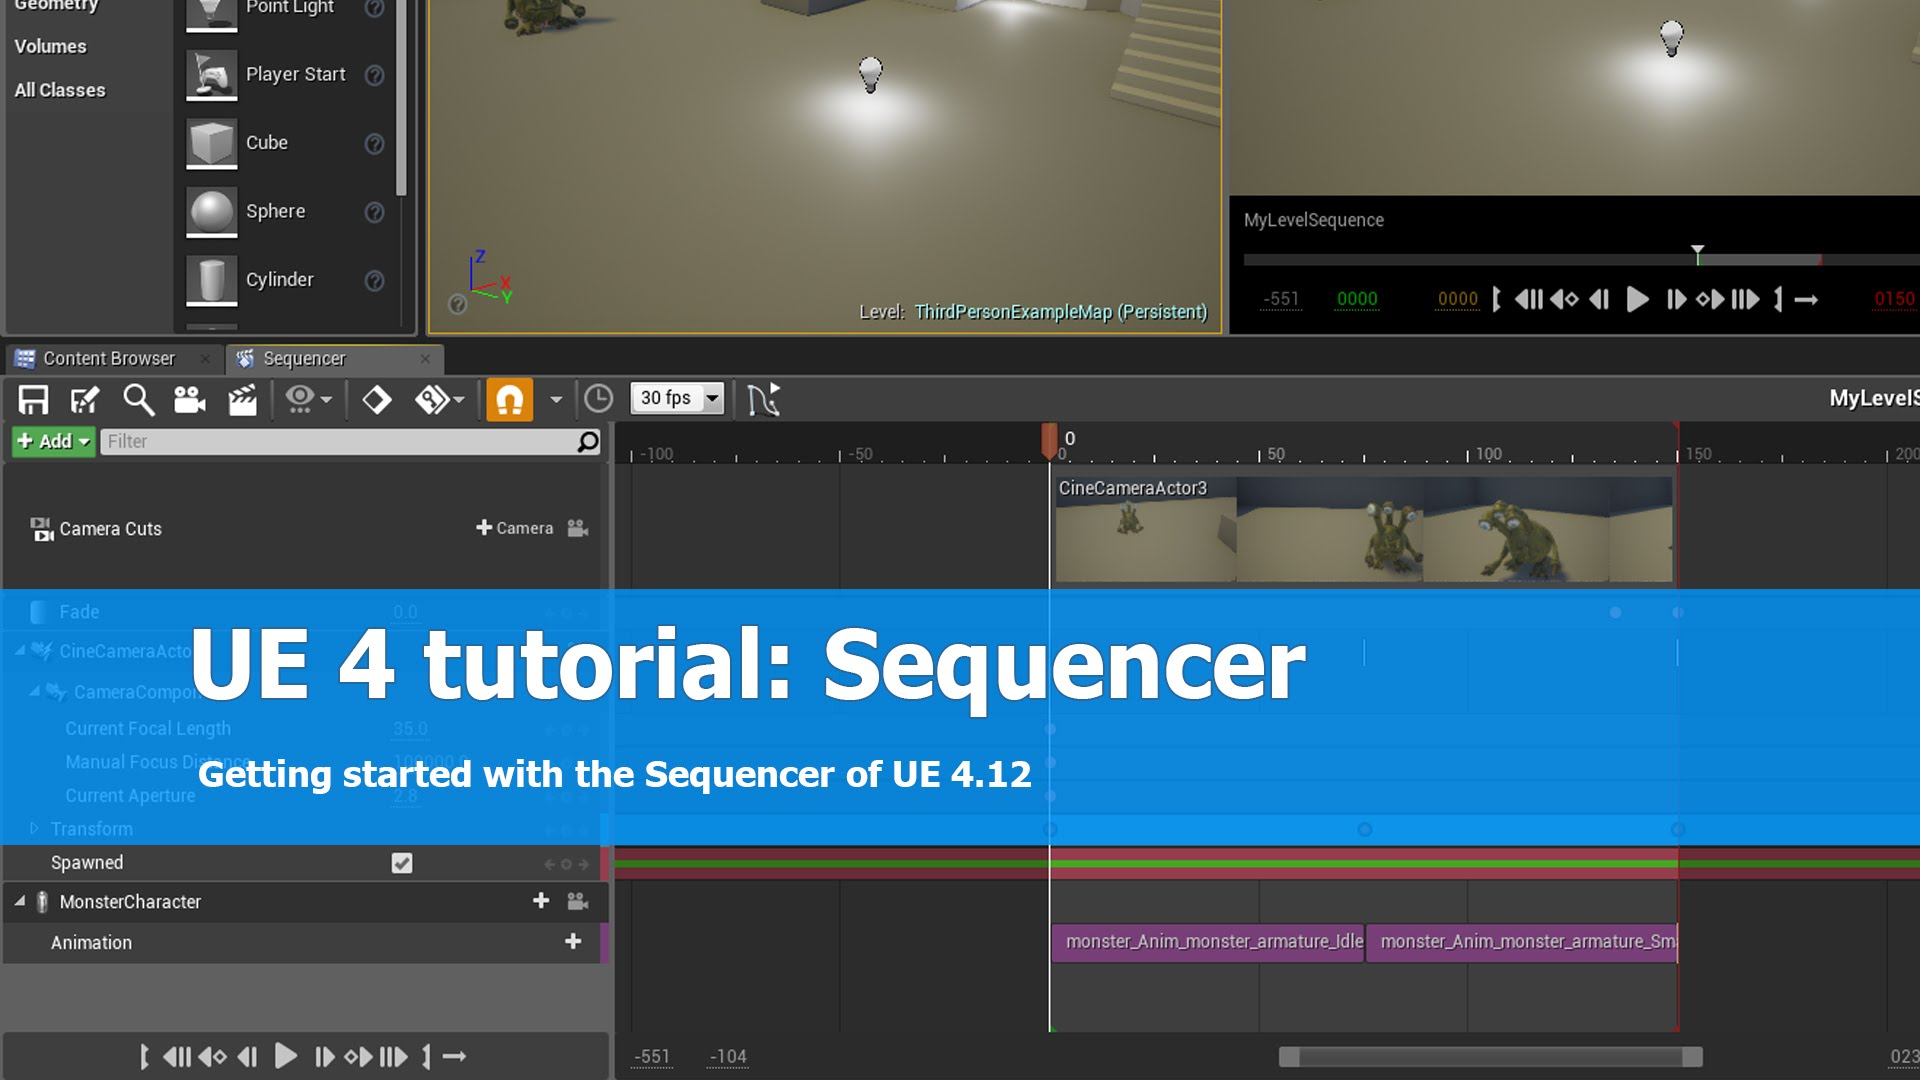 UE 4 tutorial: Sequencer